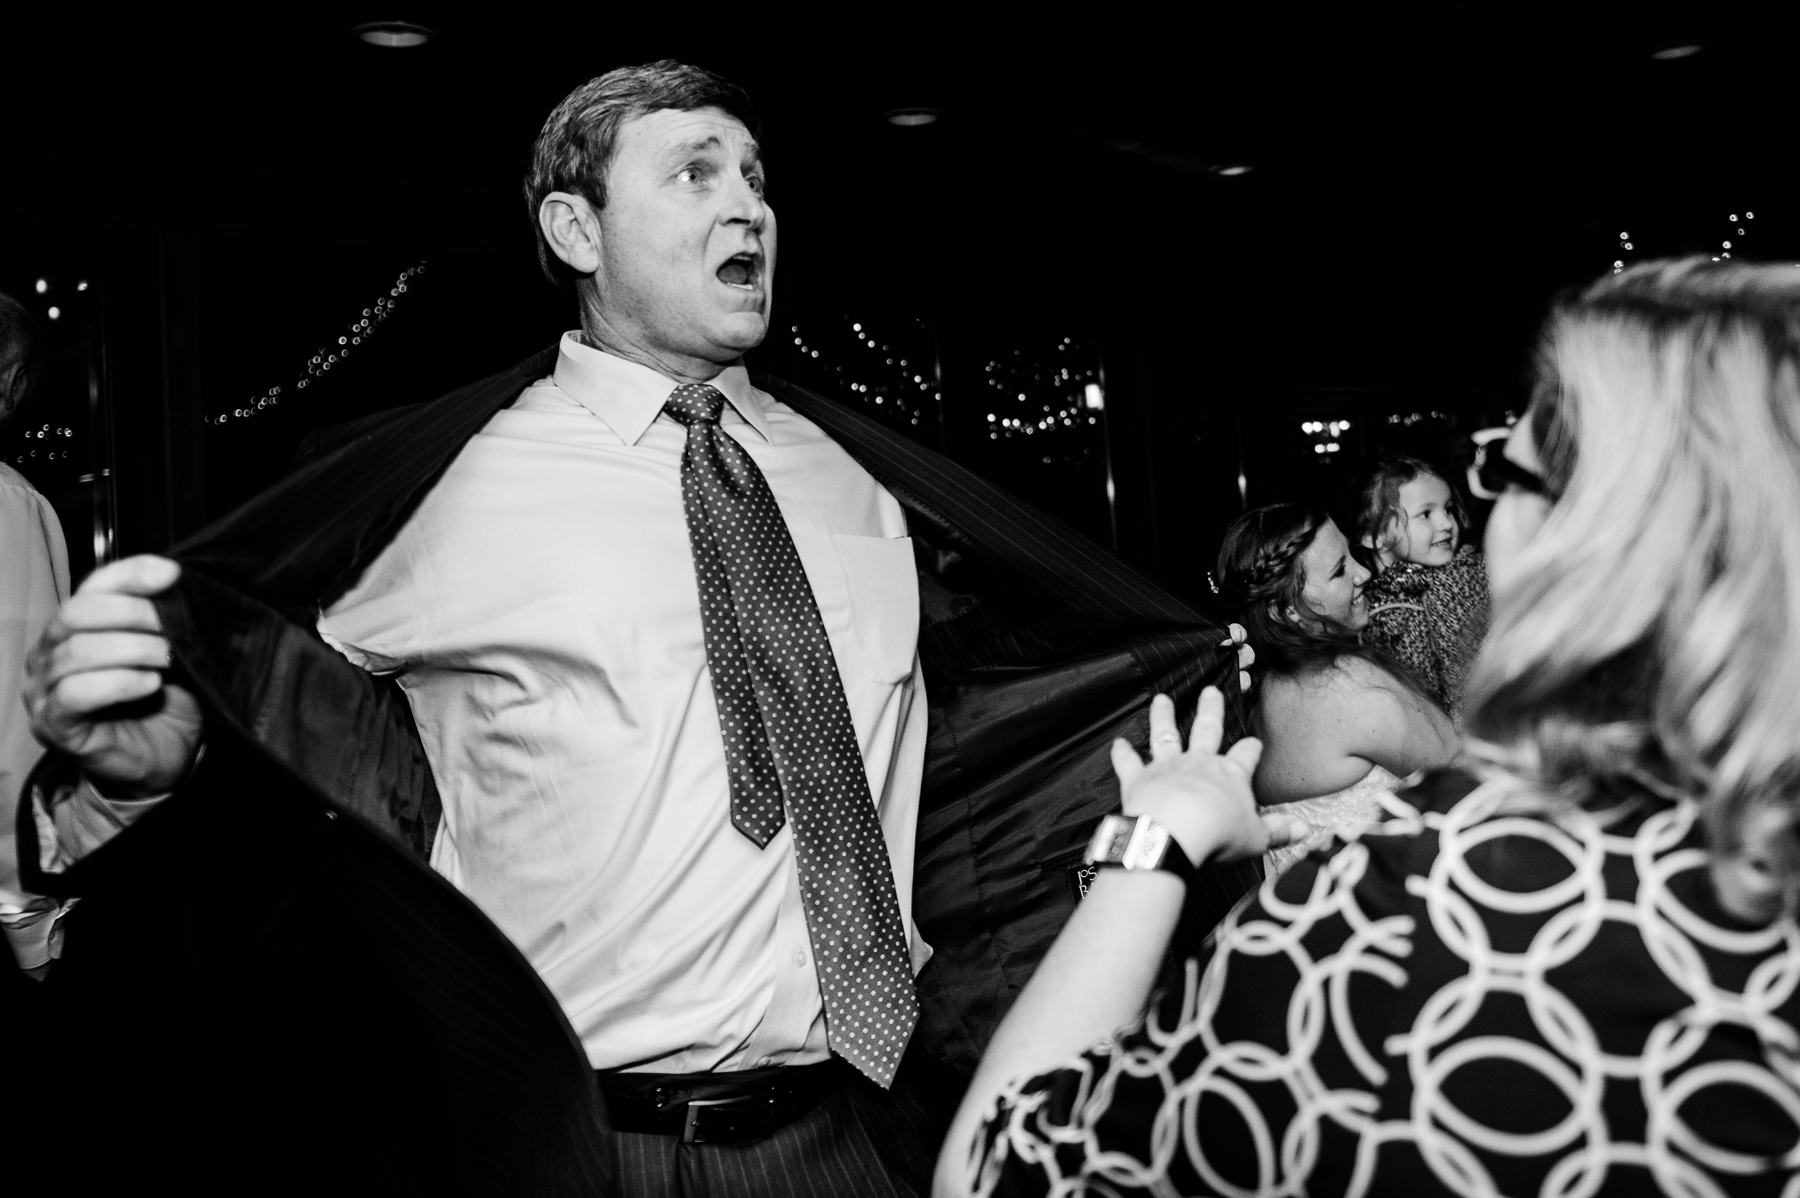 seattle-documentary-wedding-photographer-best-35